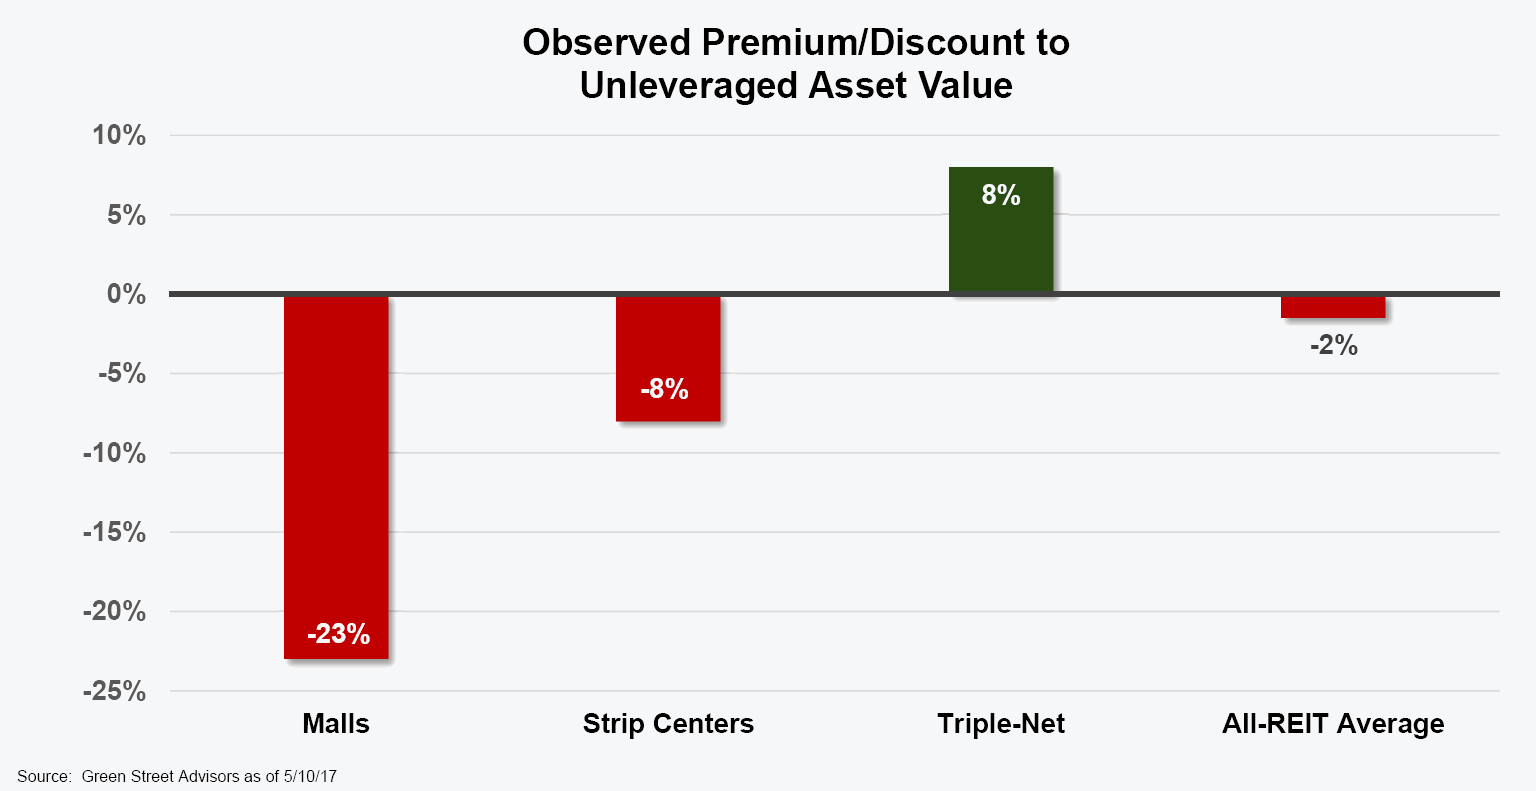 retail REITs trading at discounts to NAV